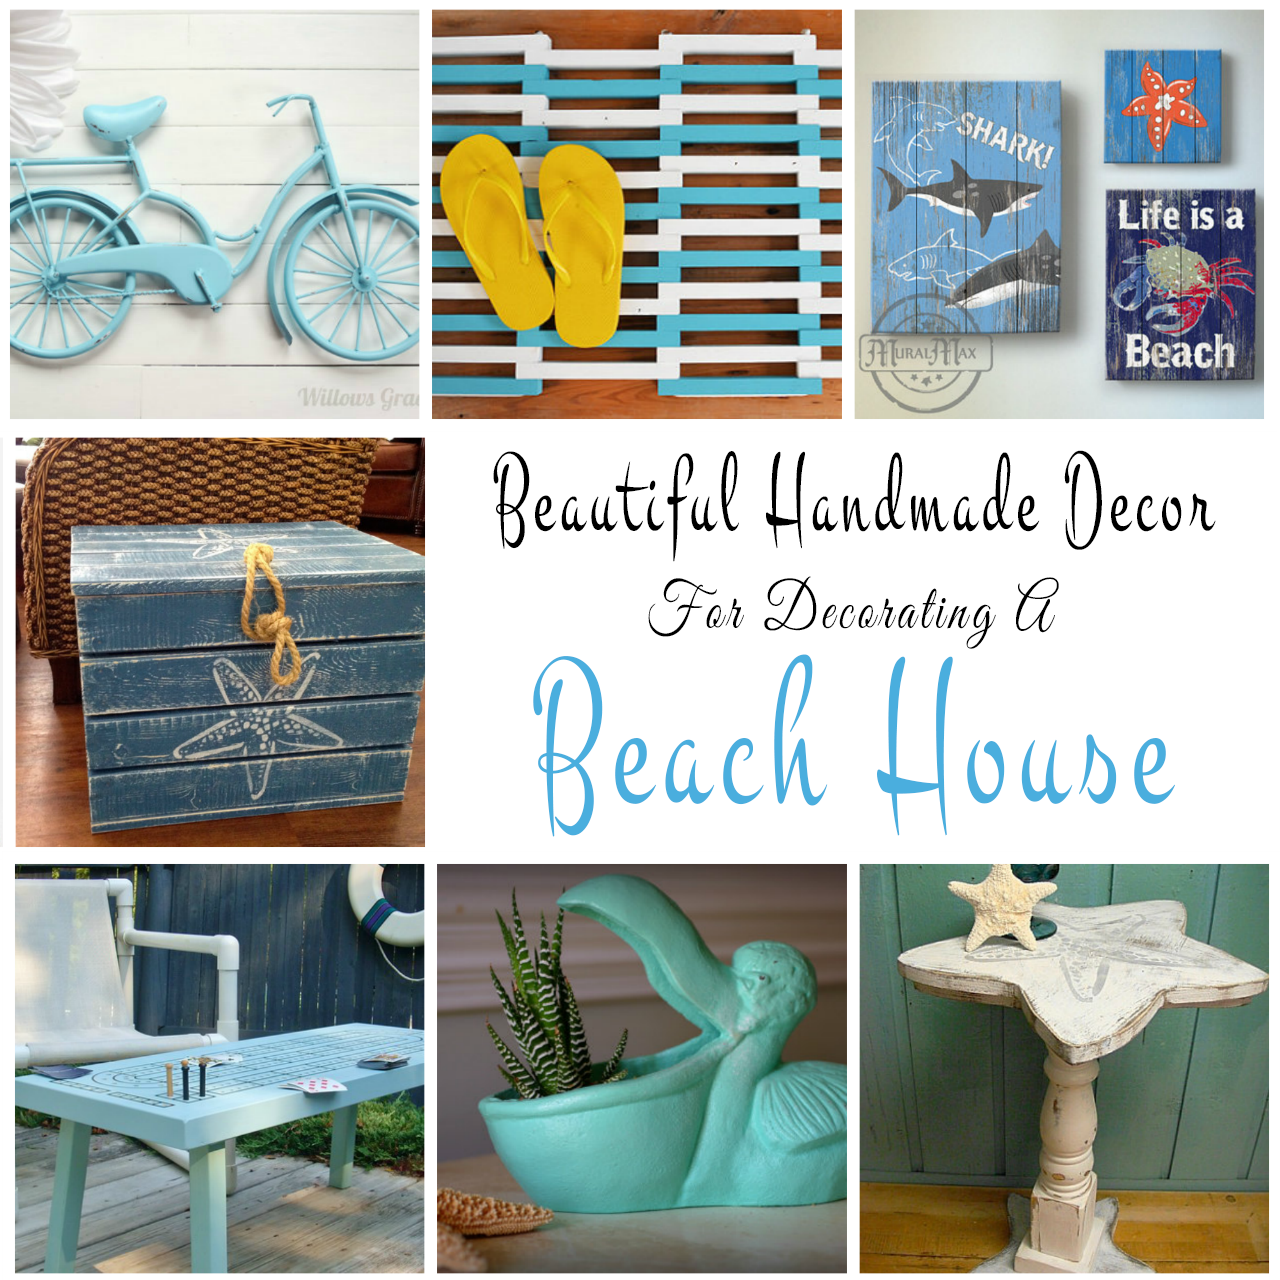 Handmade decor ideas for decorating a beach house for House decorating themes